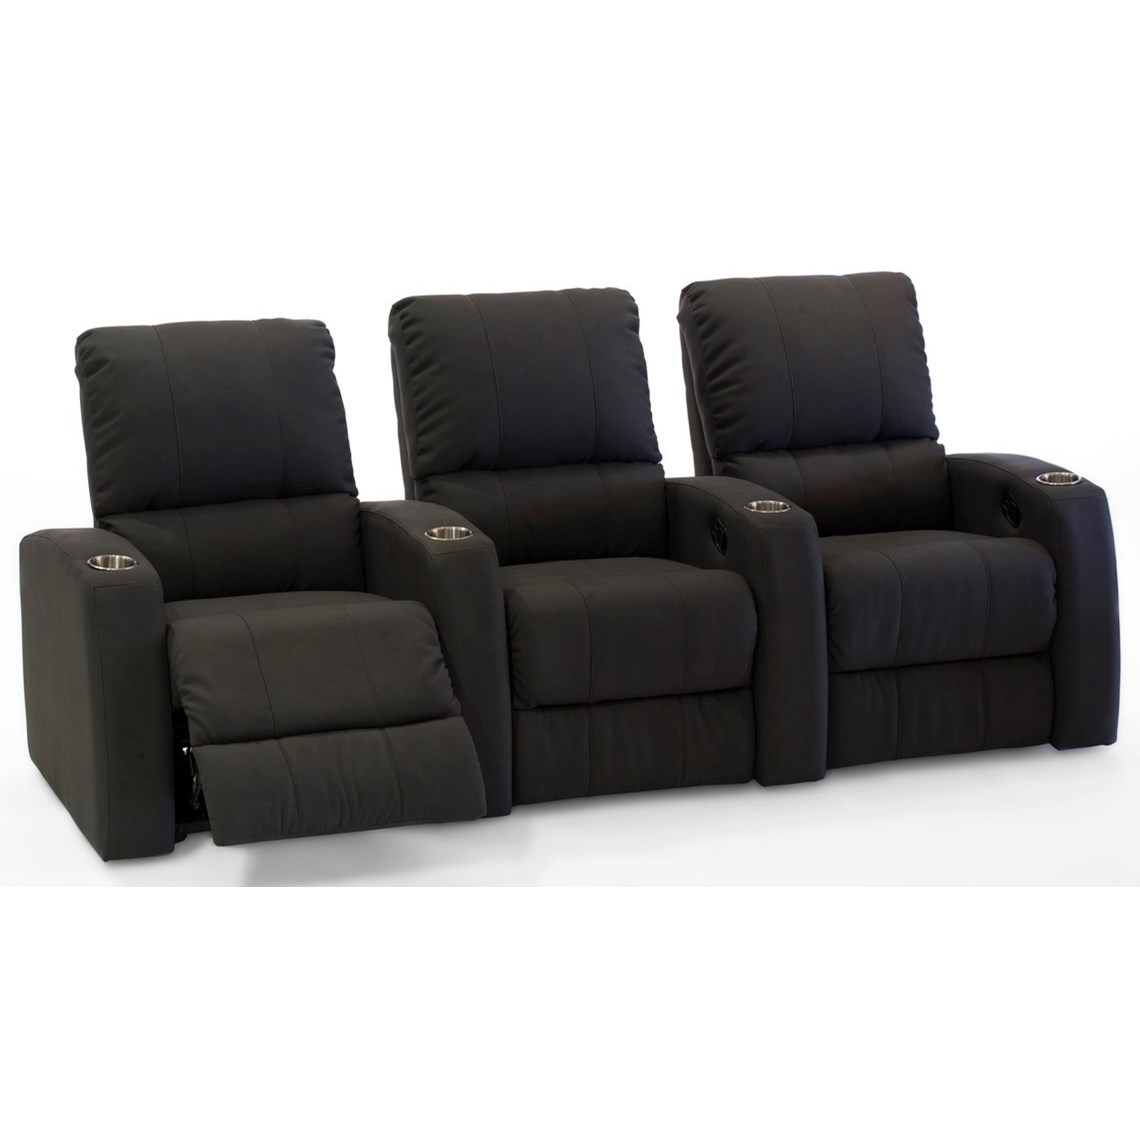 Pacifico  3-Seat Reclining Theater Seating by Palliser at Mueller Furniture